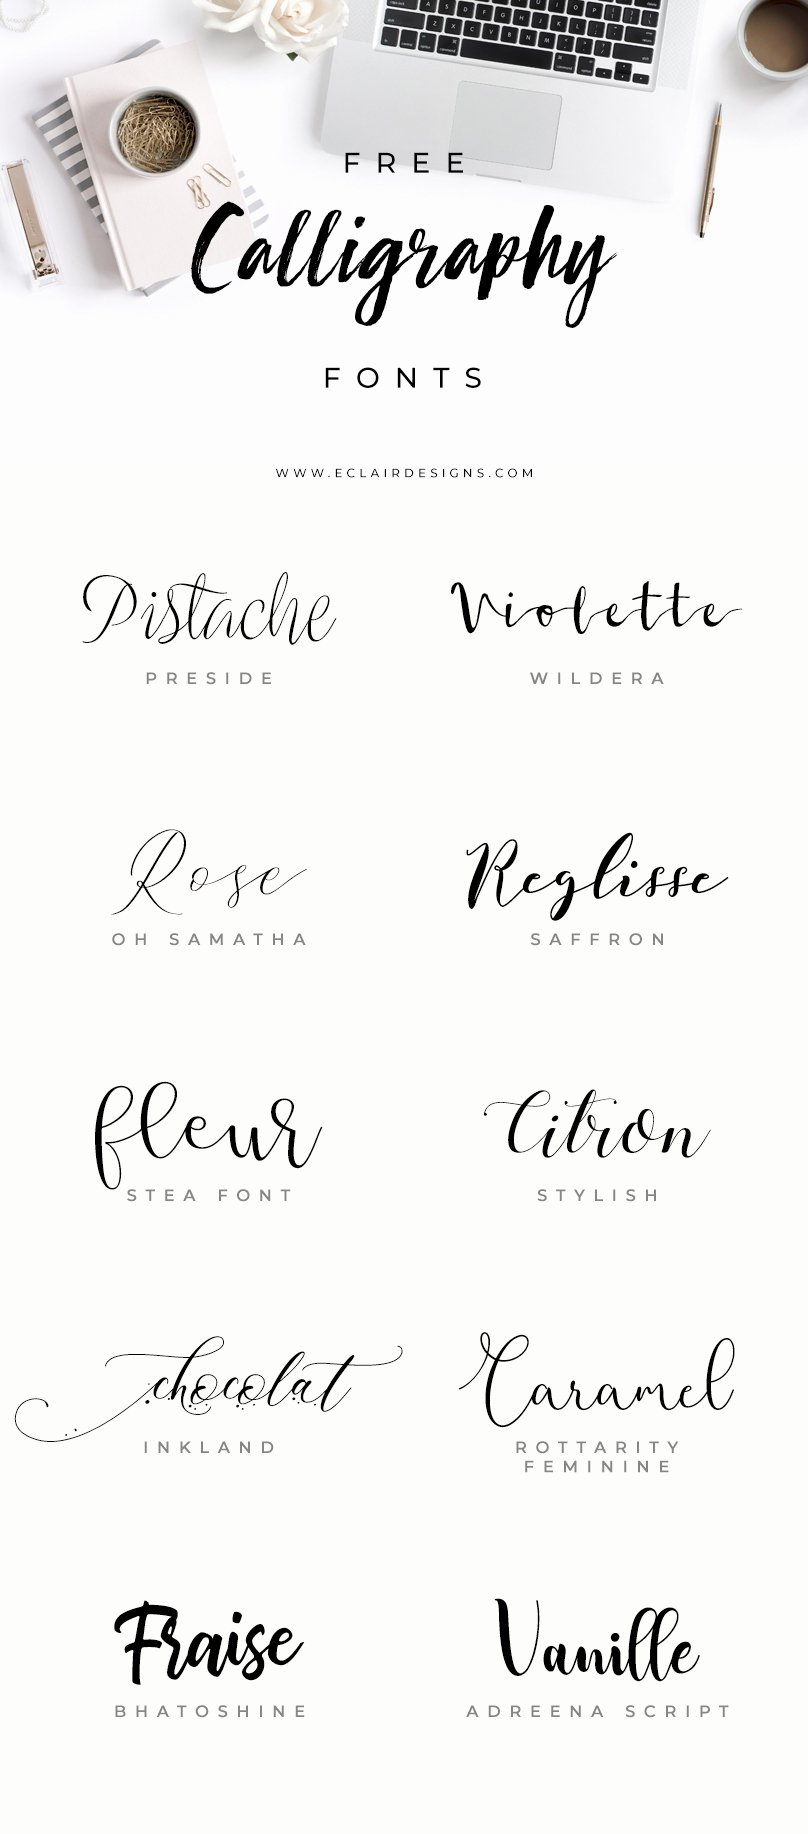 Calligraphy Font for Tattoo Best Of Eclair Designs 10 Free Calligraphy Fonts